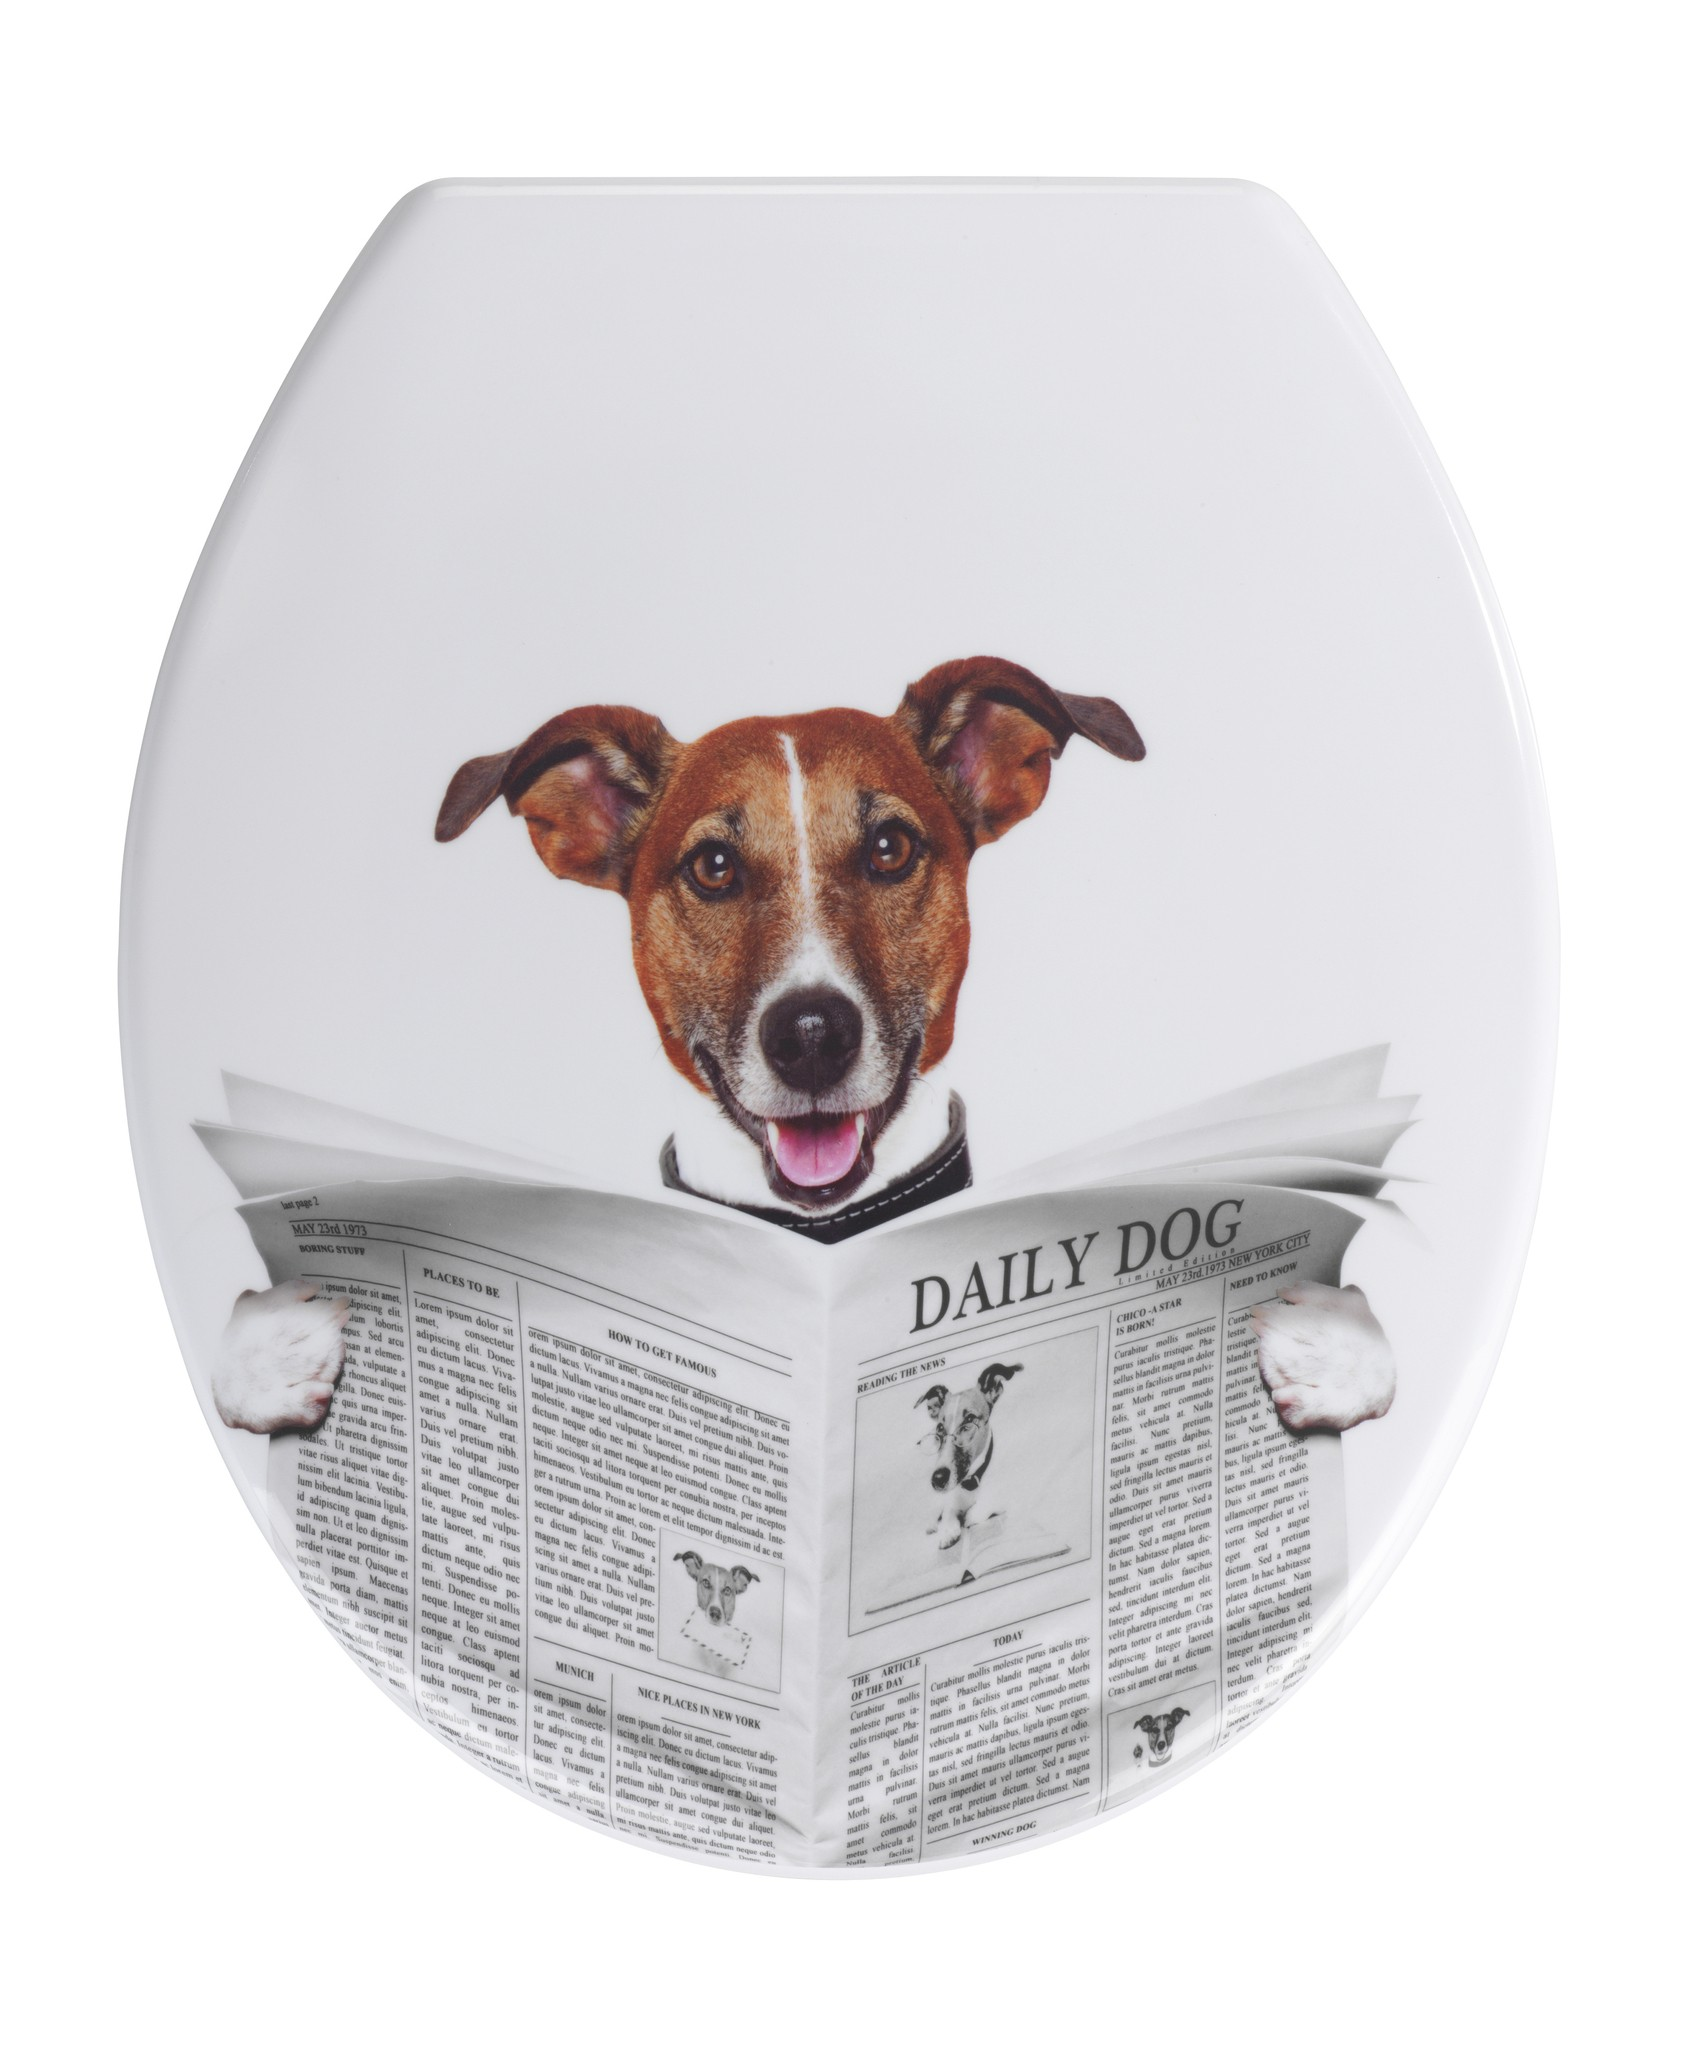 Wenko WC-Sitz Daily Dog, Duroplast